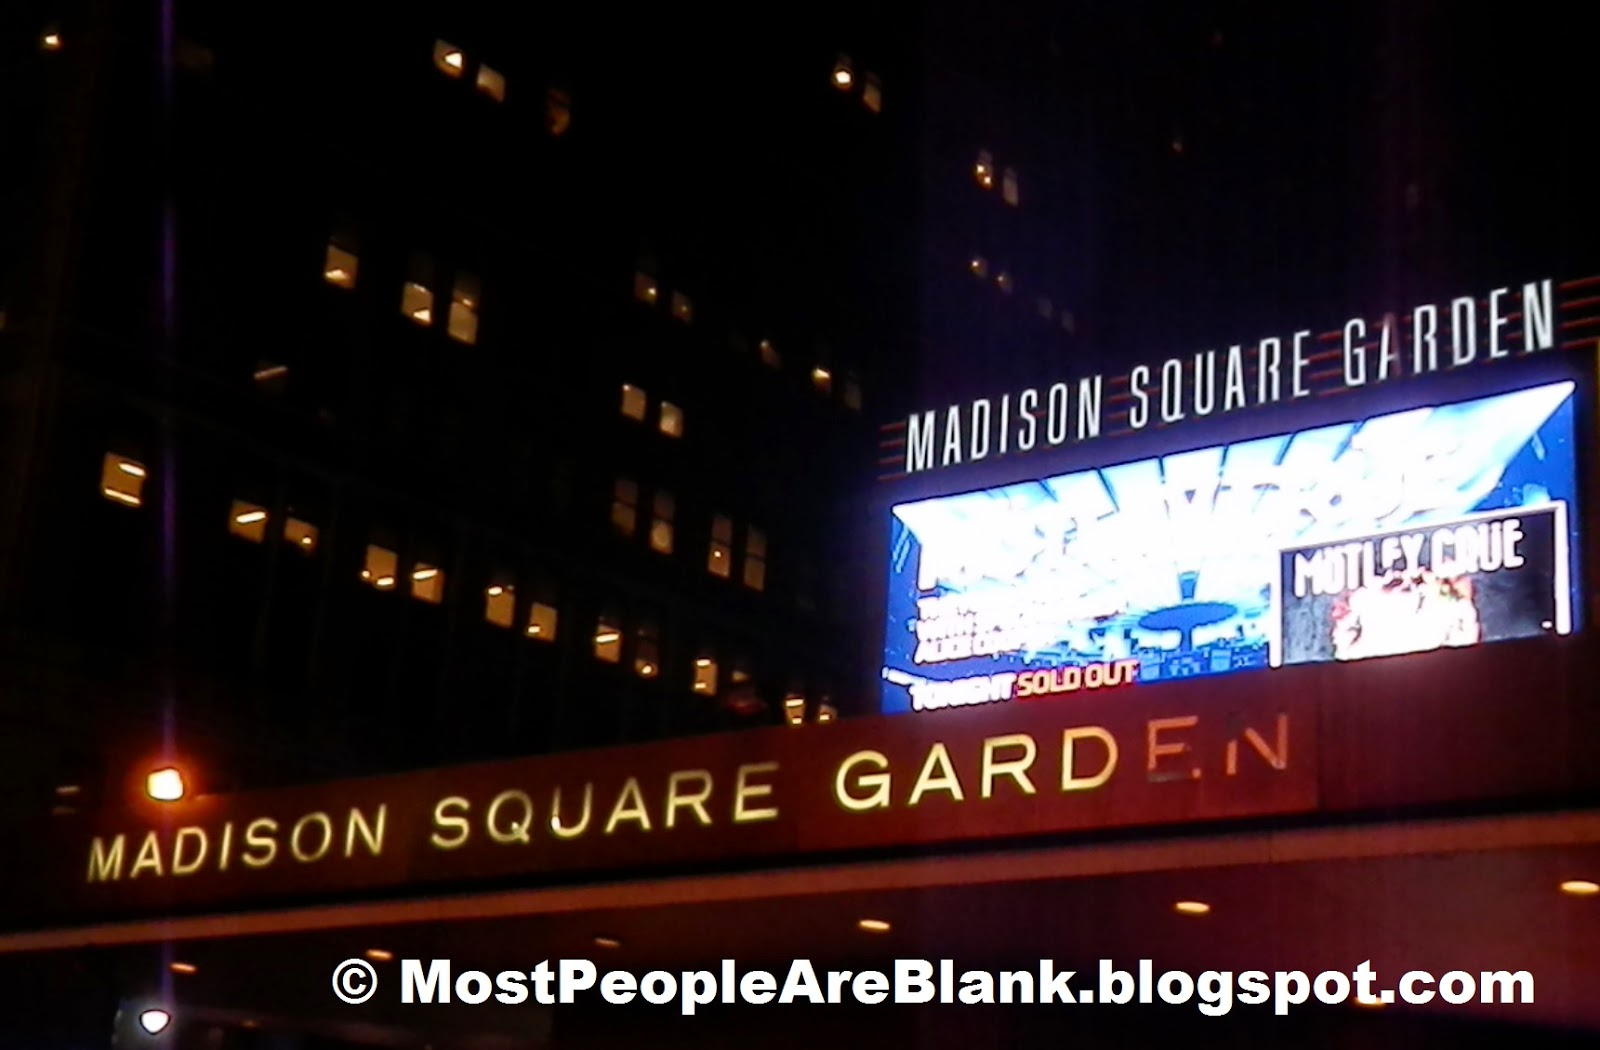 Most people are blank motley crue madison square garden nyc october 28 2014 live concert for Madison square garden concert tonight